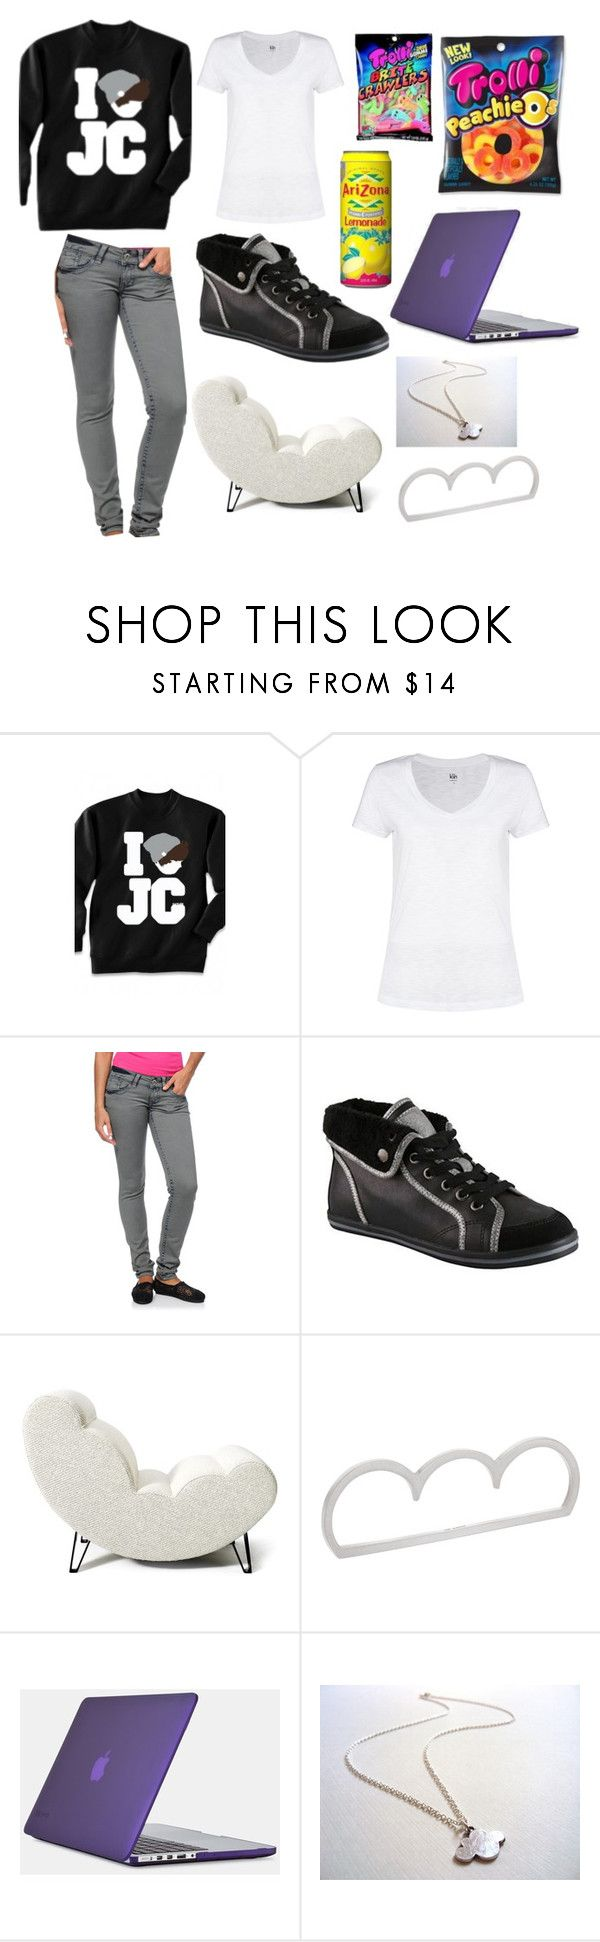 """JC Caylen"" by ferny117 ❤ liked on Polyvore featuring Kin by John Lewis, Hydraulic, Springa, Speck, GAS Jeans, o2l and jccaylen"